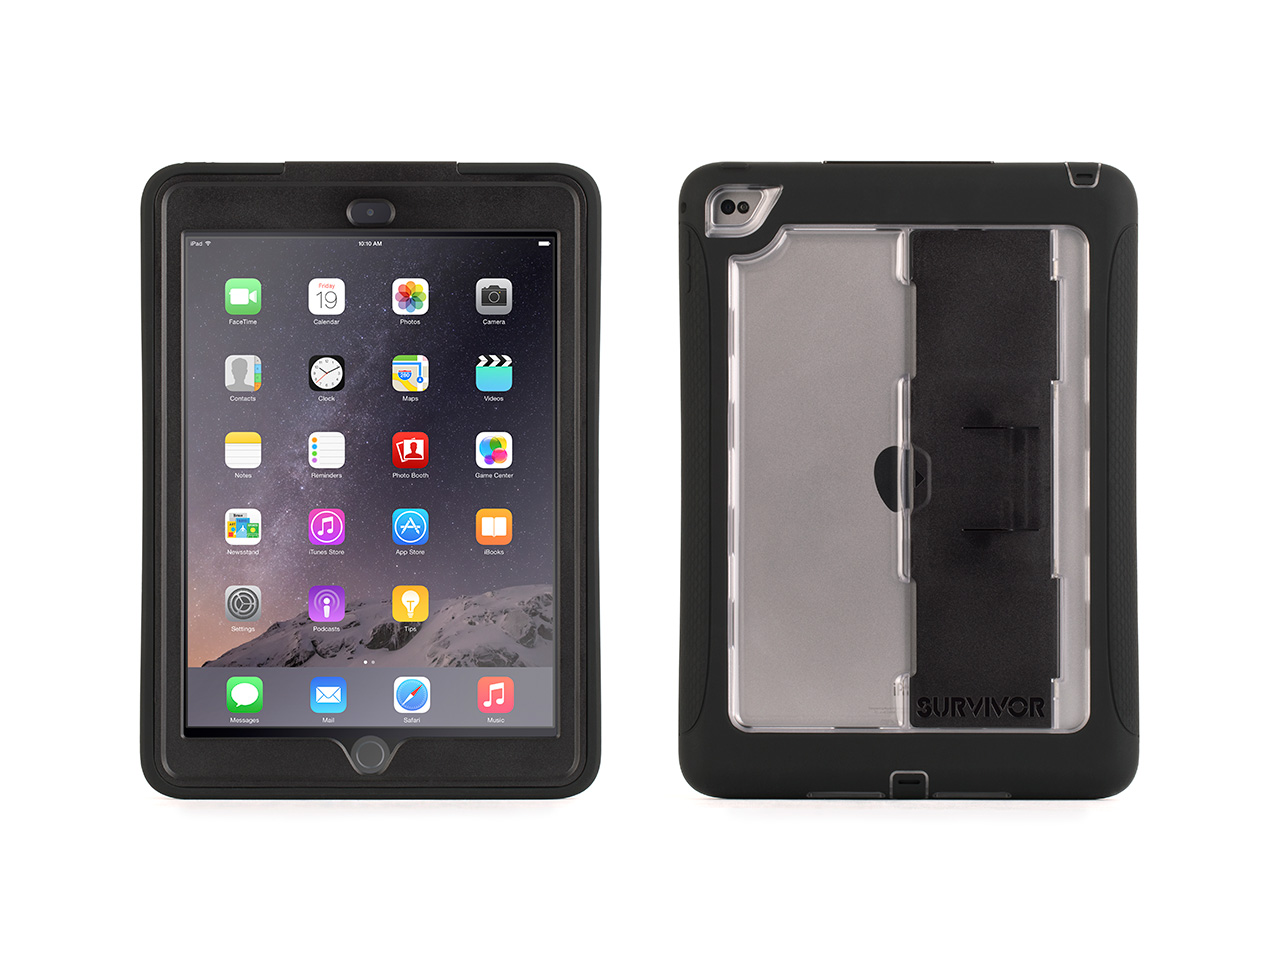 Black/Clear Survivor Slim Protective Case for iPad Air 2